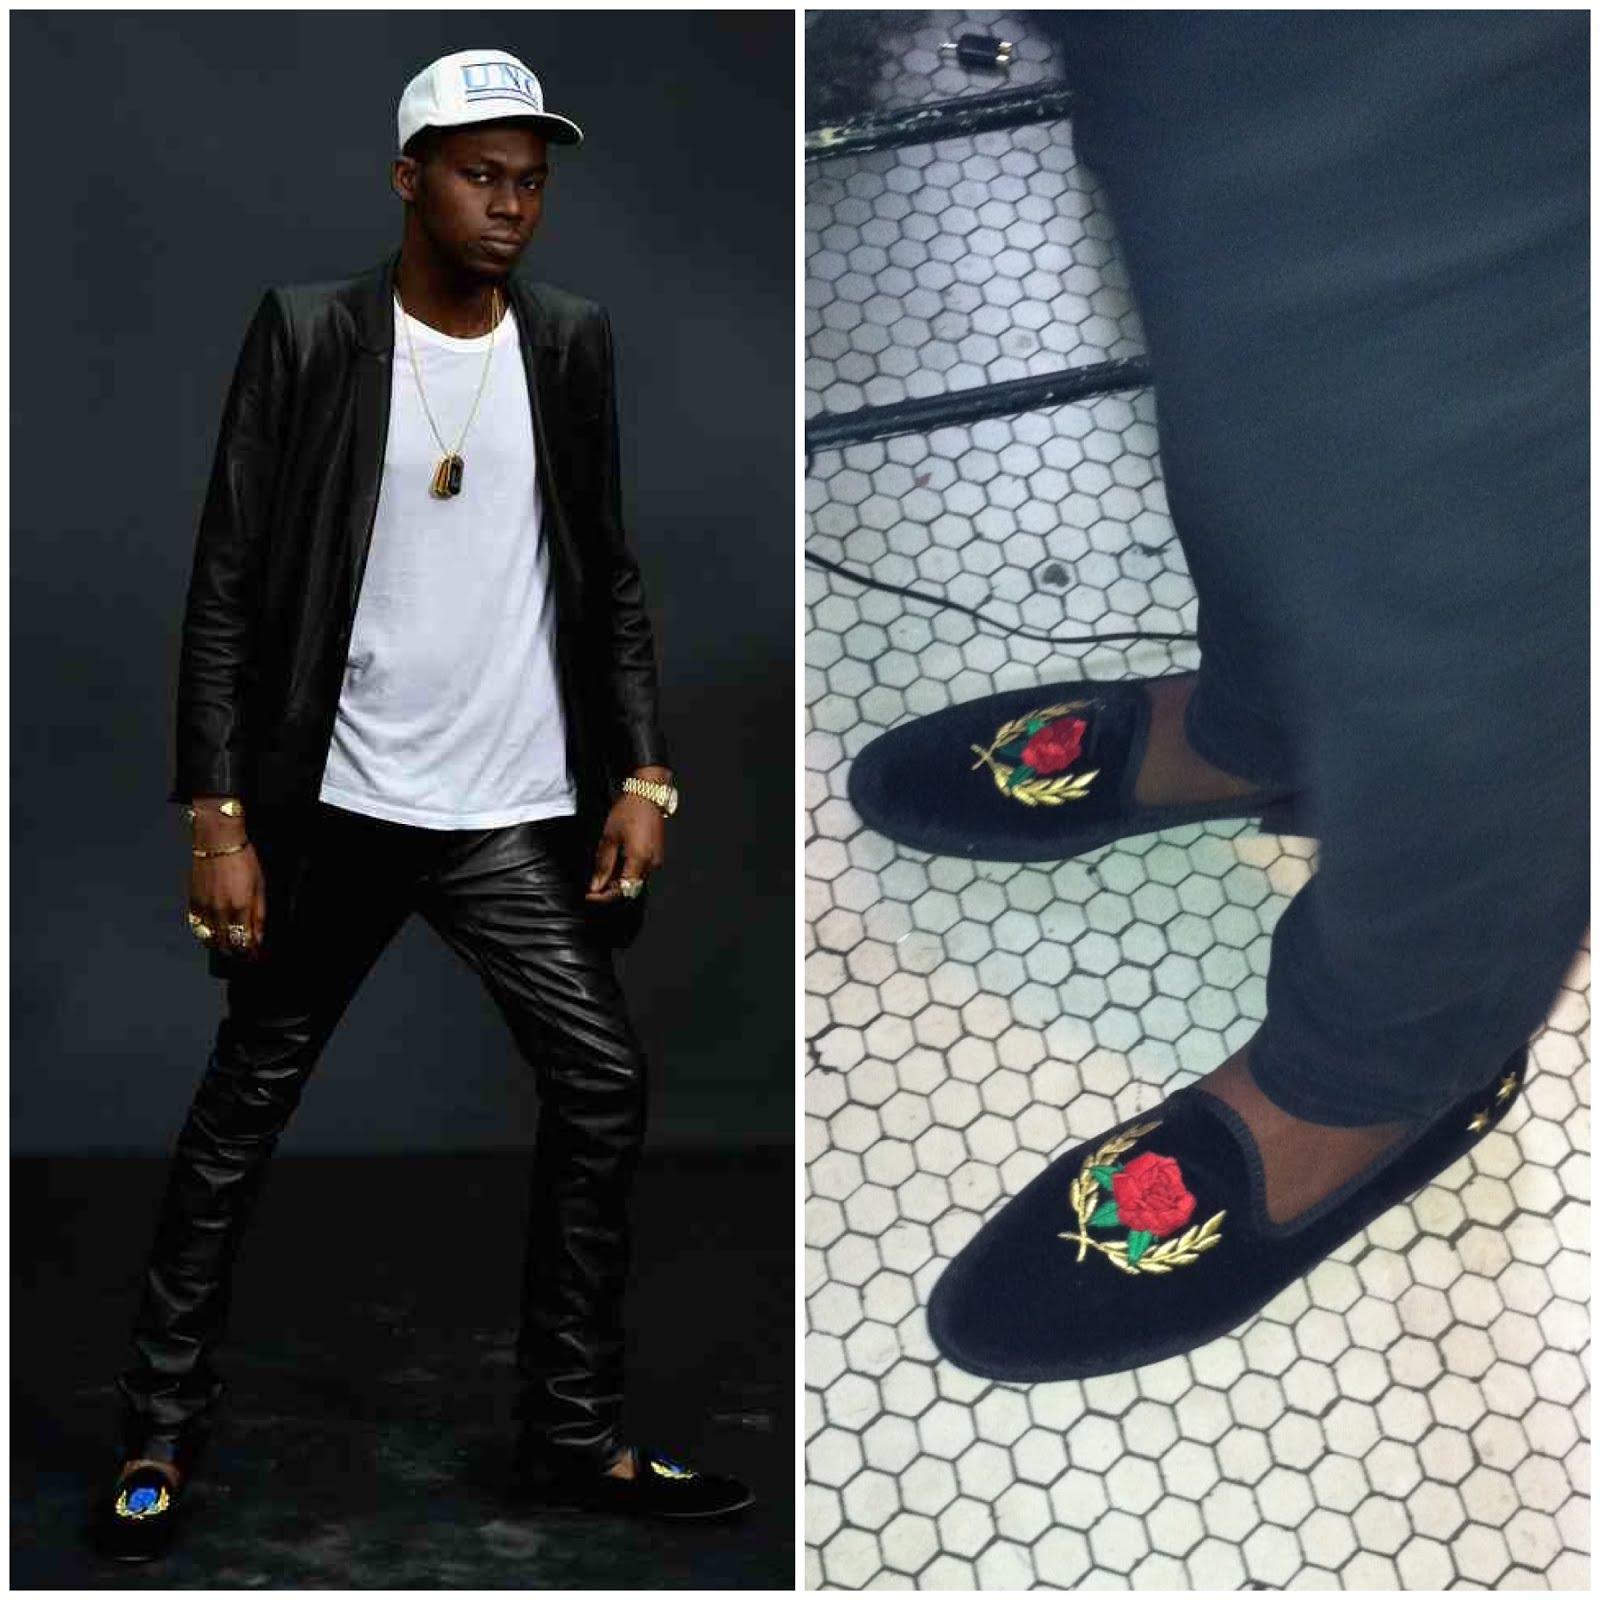 00O00 Menswear Blog Theophilus London attends the Chanel Fall/Winter 2013 Ready-to-Wear show as part of Paris Fashion Week at Grand Palais on March 5, 2013 in Paris, France, wearing Del Toro x Theophilus London Limited Edition LVRS Slipper - Edition II